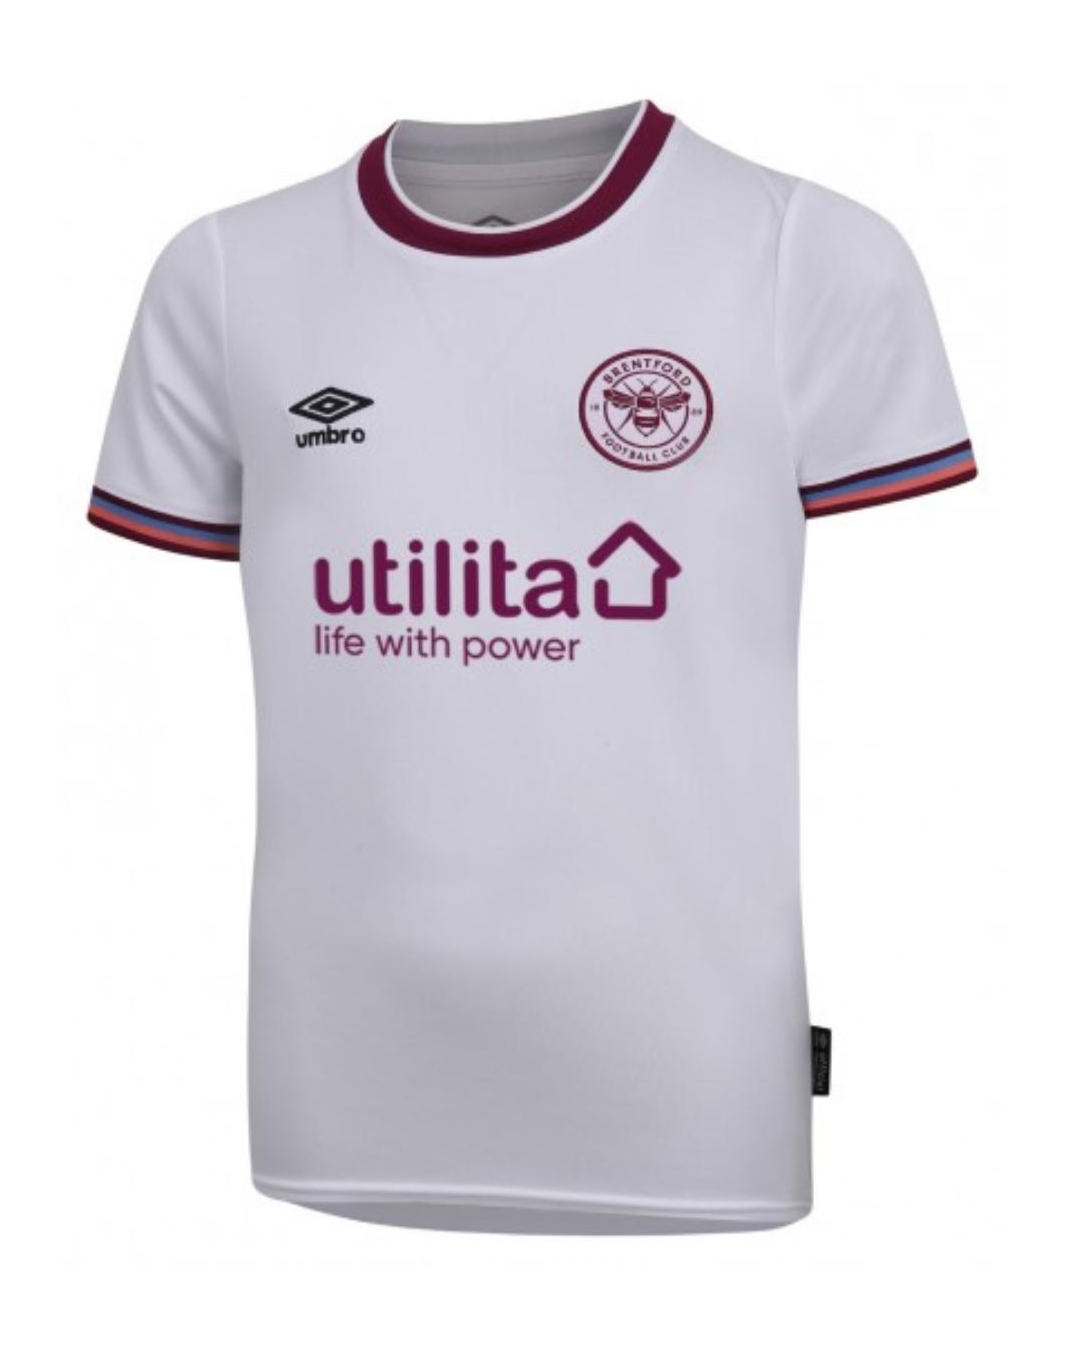 Brentford Third 2020/2021 Football Shirt Manufactured By Umbro. The Club Plays Football In The Championship.